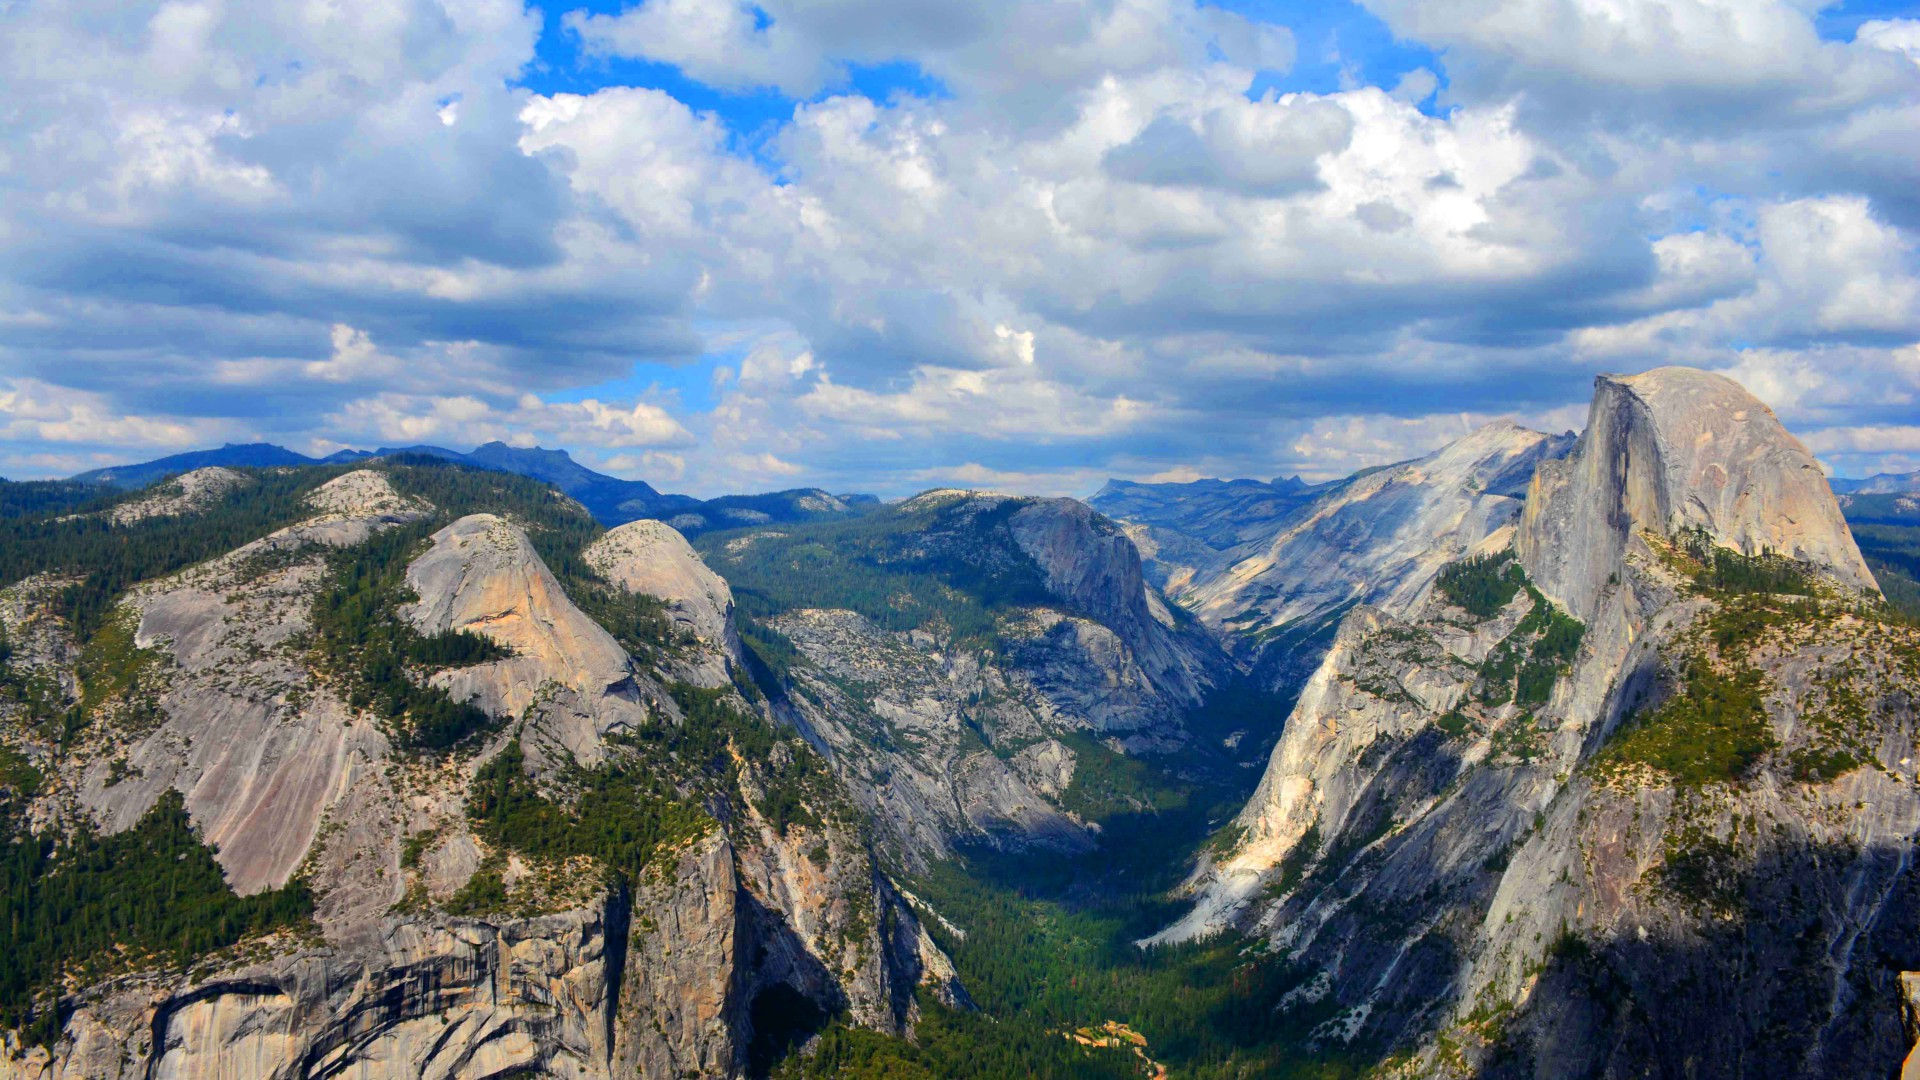 Yosemite, 5k, 4k wallpaper, 8k, forest, OSX, apple, mountains (horizontal)